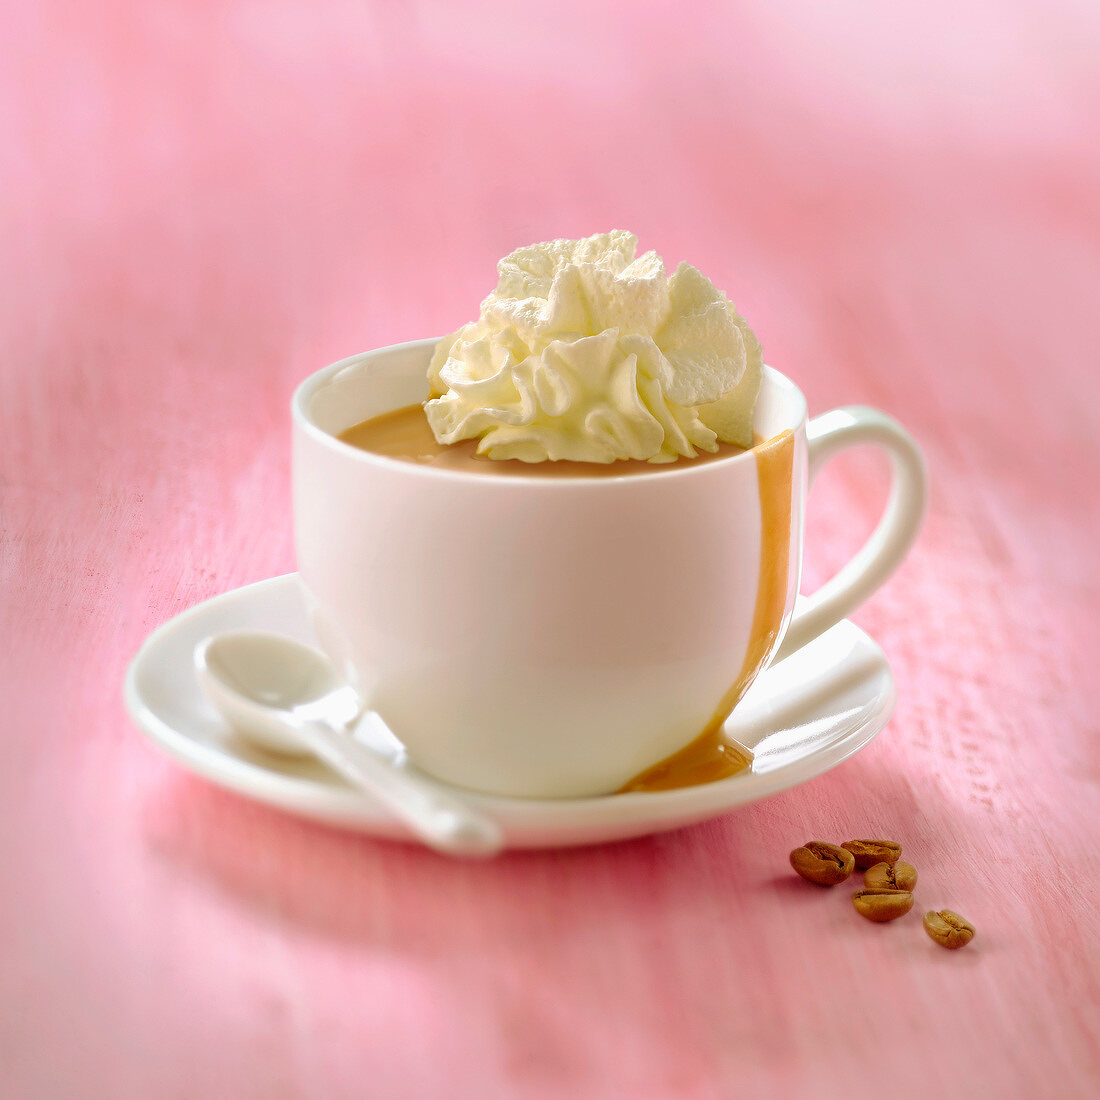 Coffee sundea with mascarpone whipped cream